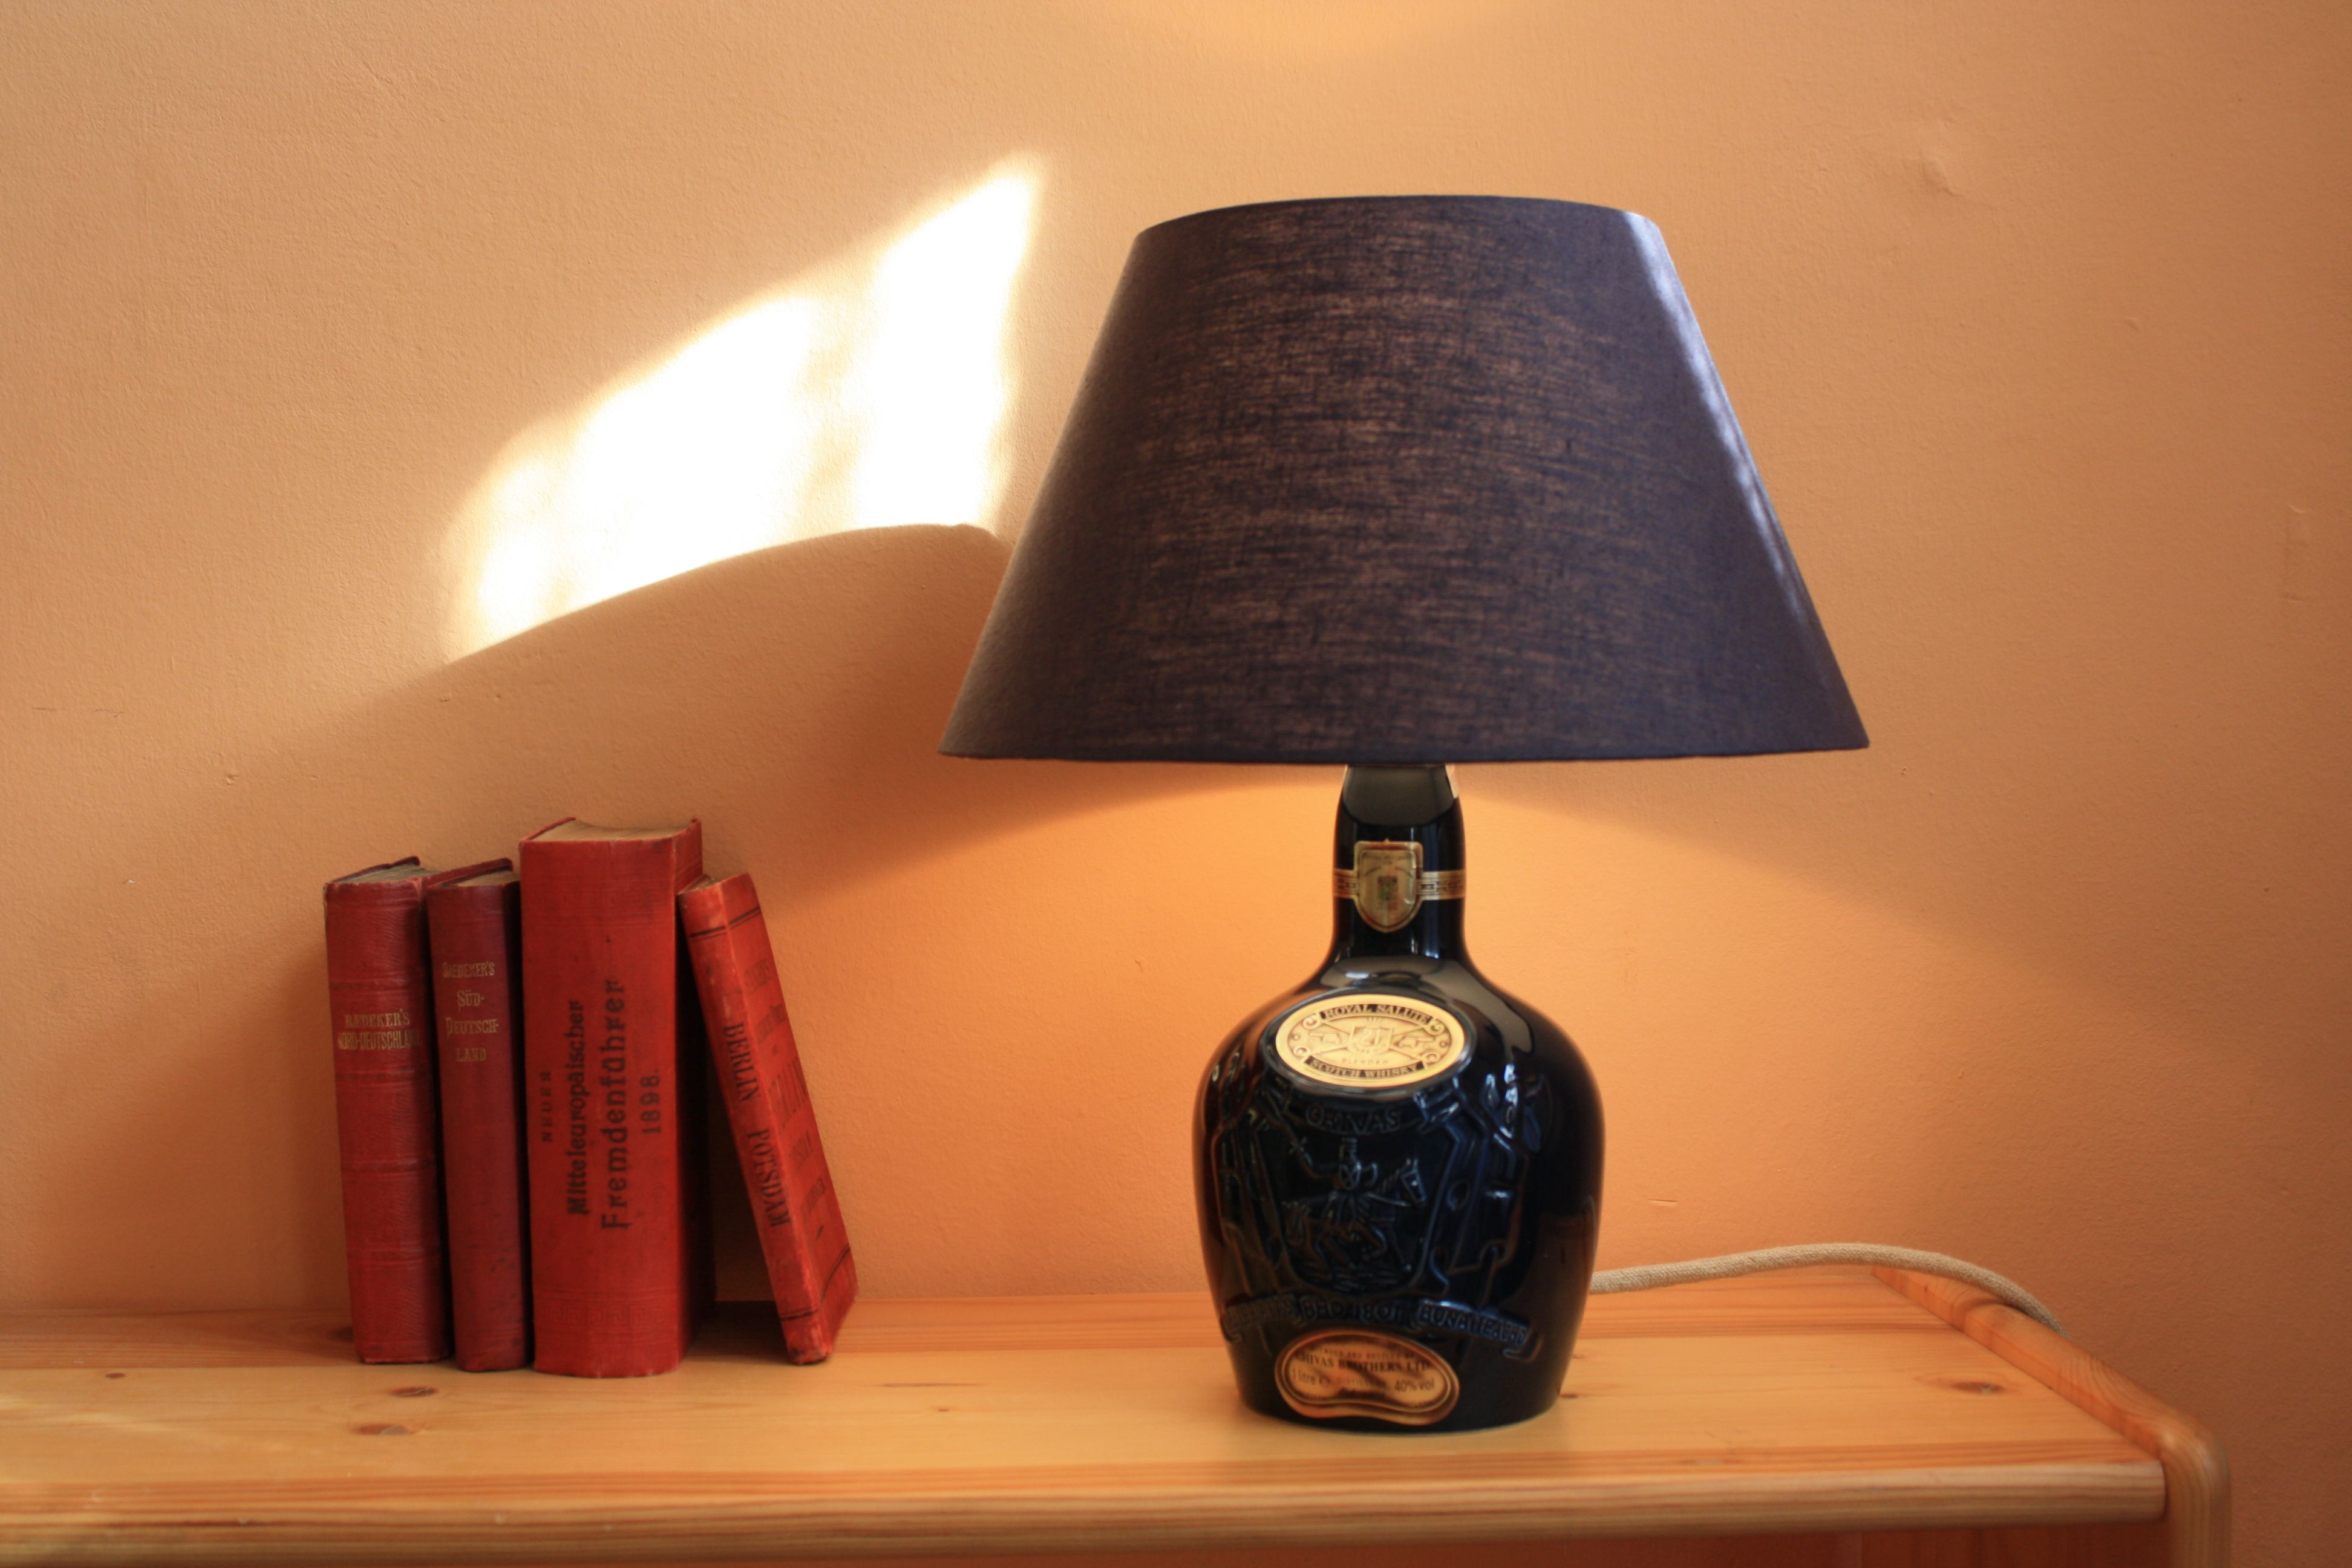 Charming table lamp made from bottle of royal salute the brand of charming table lamp made from bottle of royal salute the brand of 21 years old aloadofball Choice Image